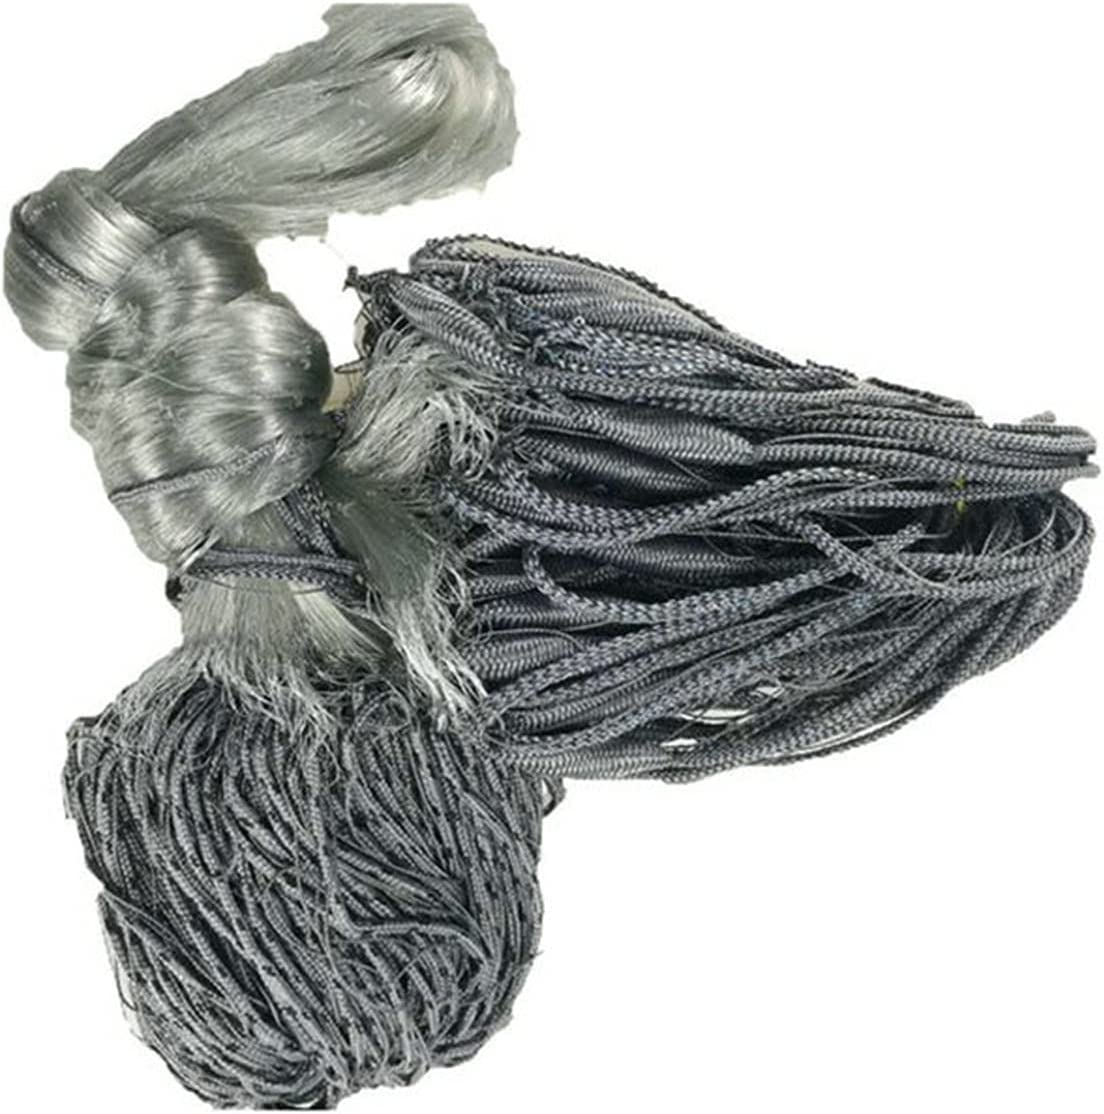 Store FRSDMY Fishing Gill Net Handmade Single Mesh Casting Nylon Our shop OFFers the best service